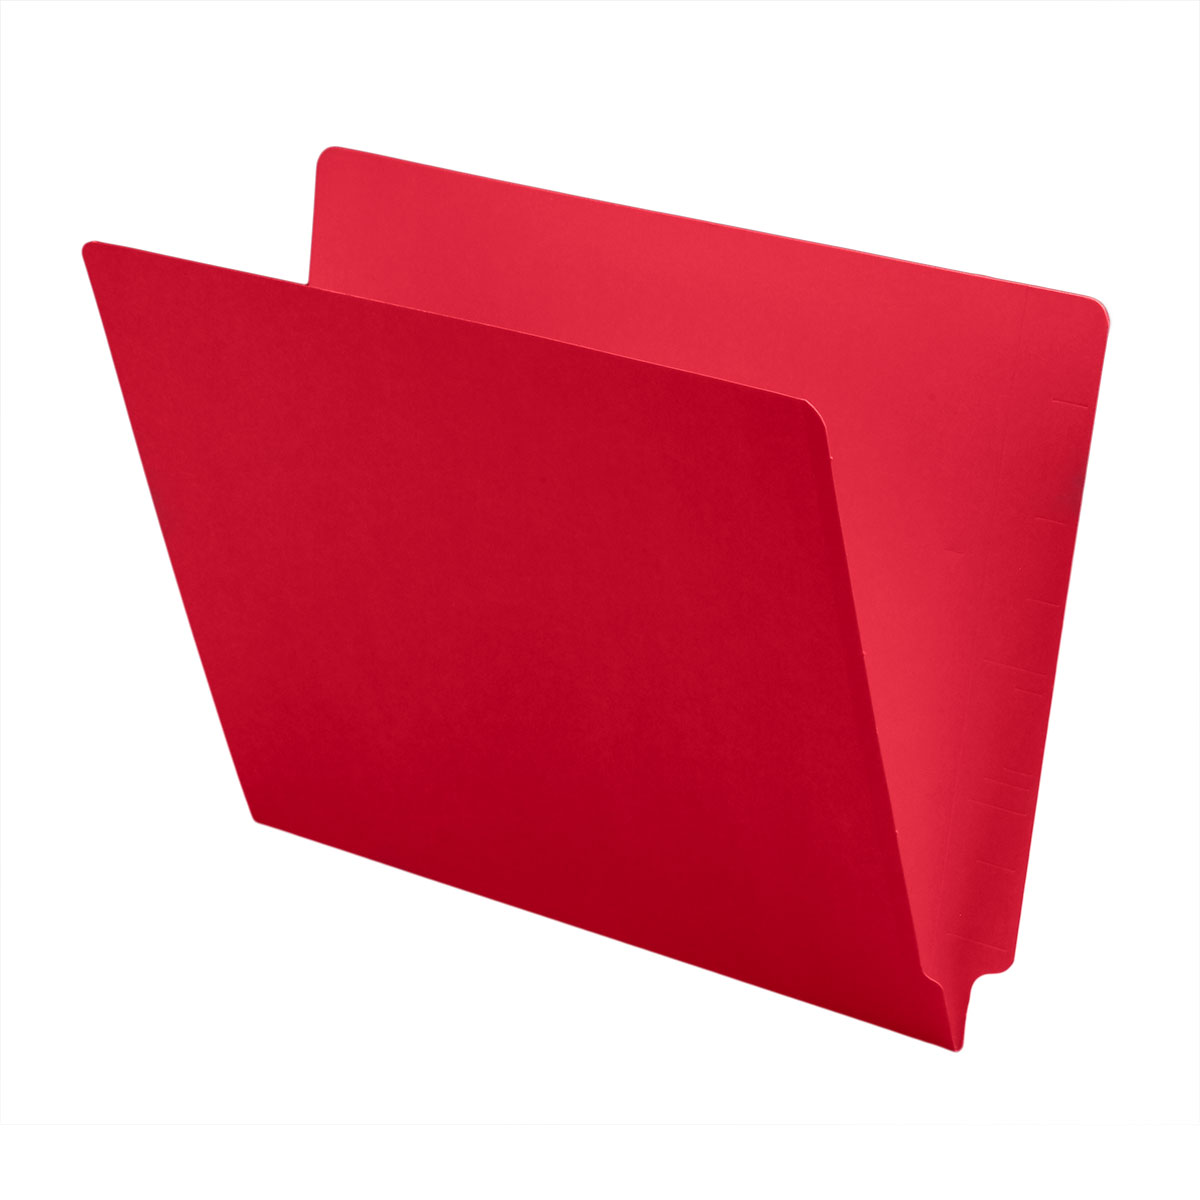 S-1600-RED - 14 pt Color Folders, Full Cut 2-Ply End Tab, Letter Size, Red (Box of 50)